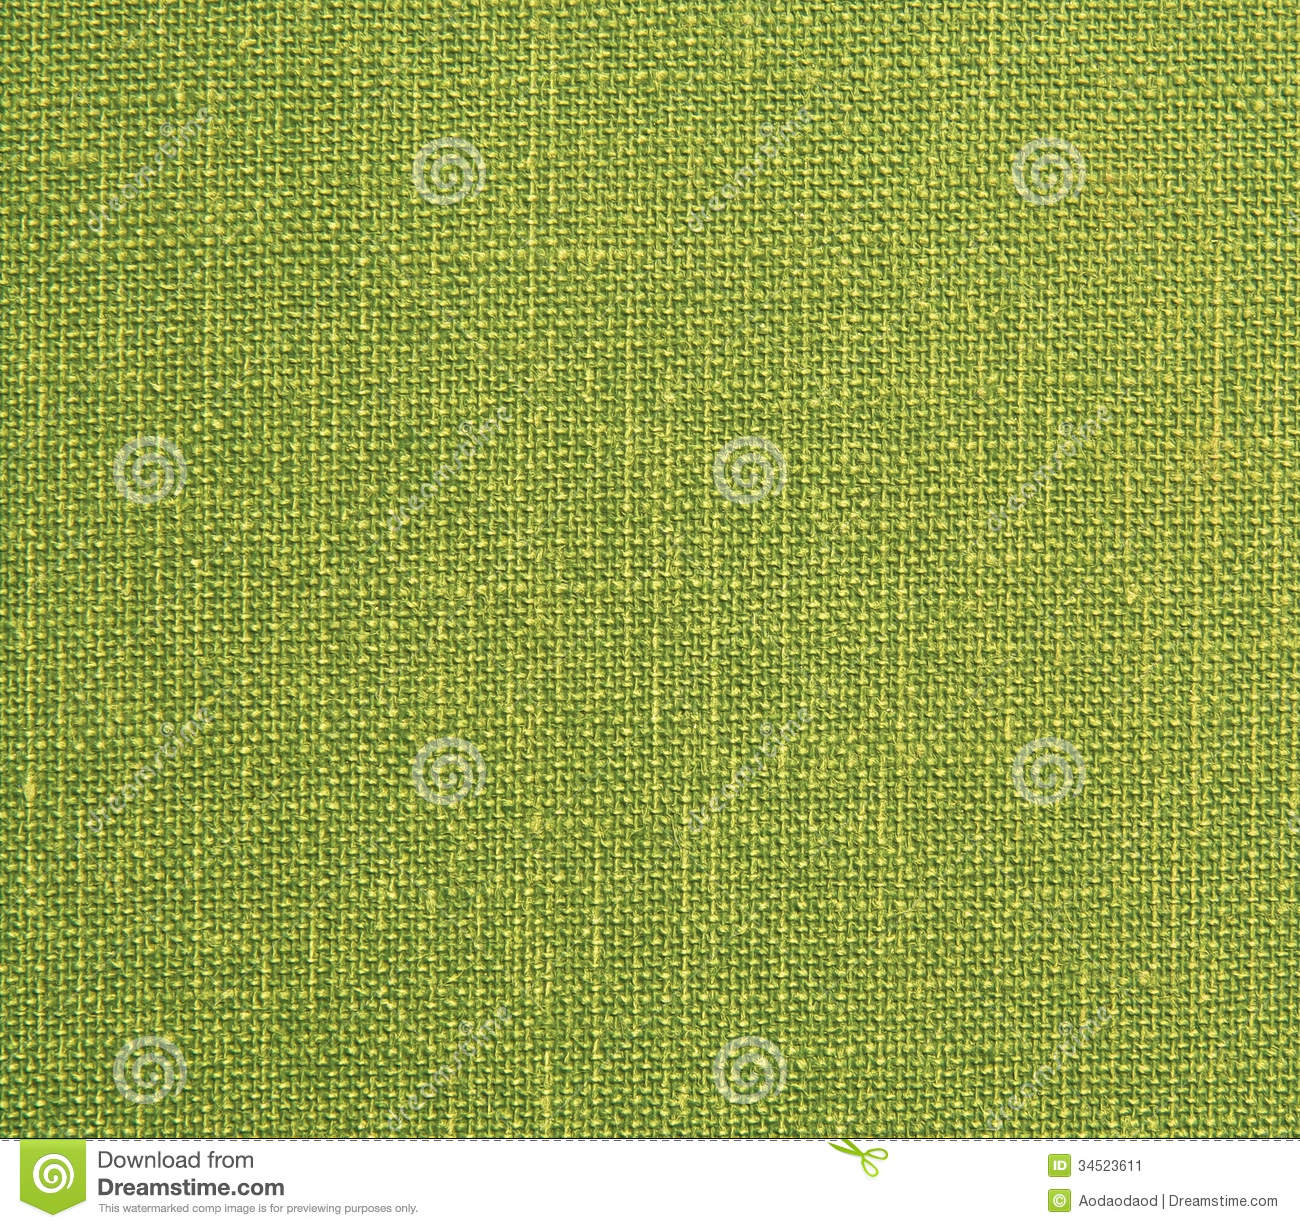 Hardcover Book Texture : Green hardcover book texture stock image